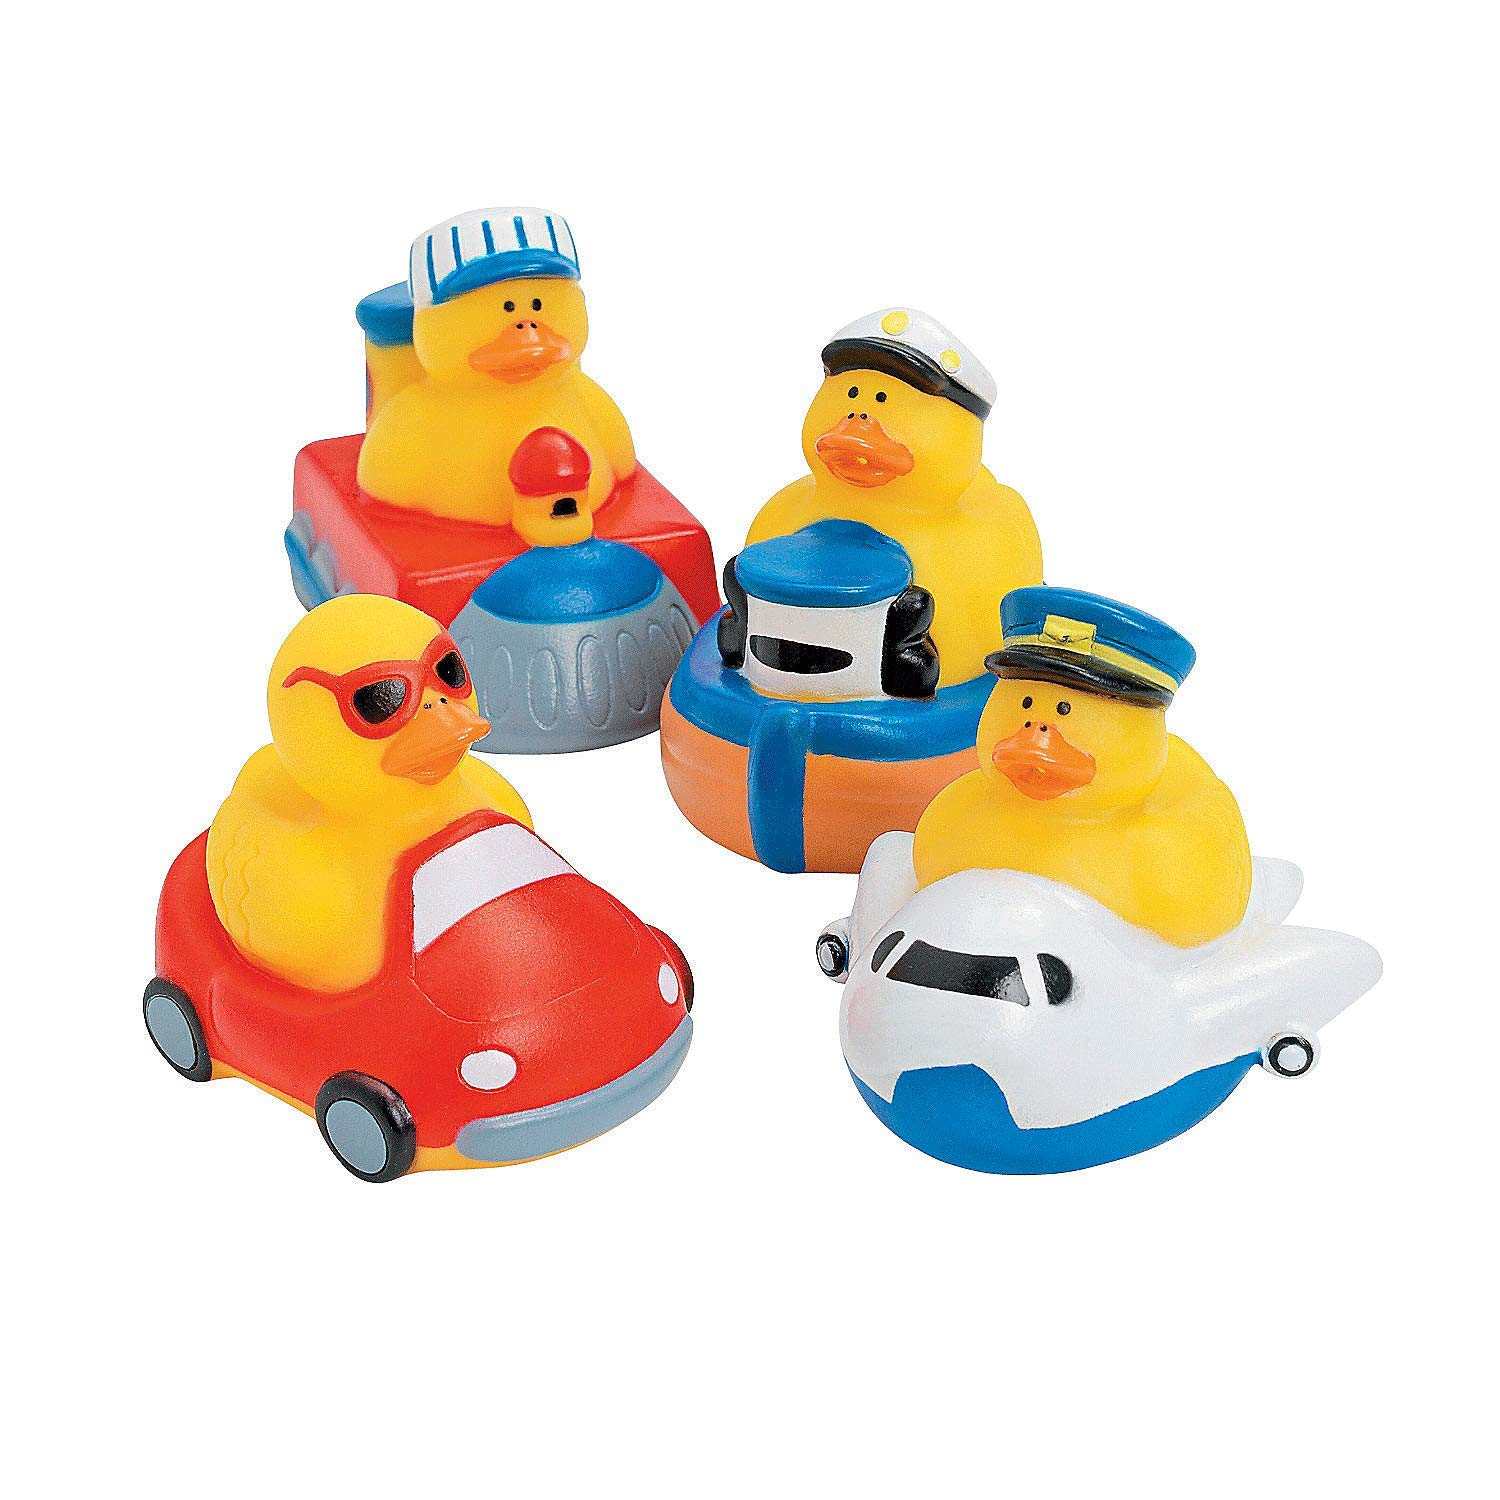 One Dozen Transportation Rubber Ducks by Oriental Trading Company OTC SG_B0037T813E_US 12 pc